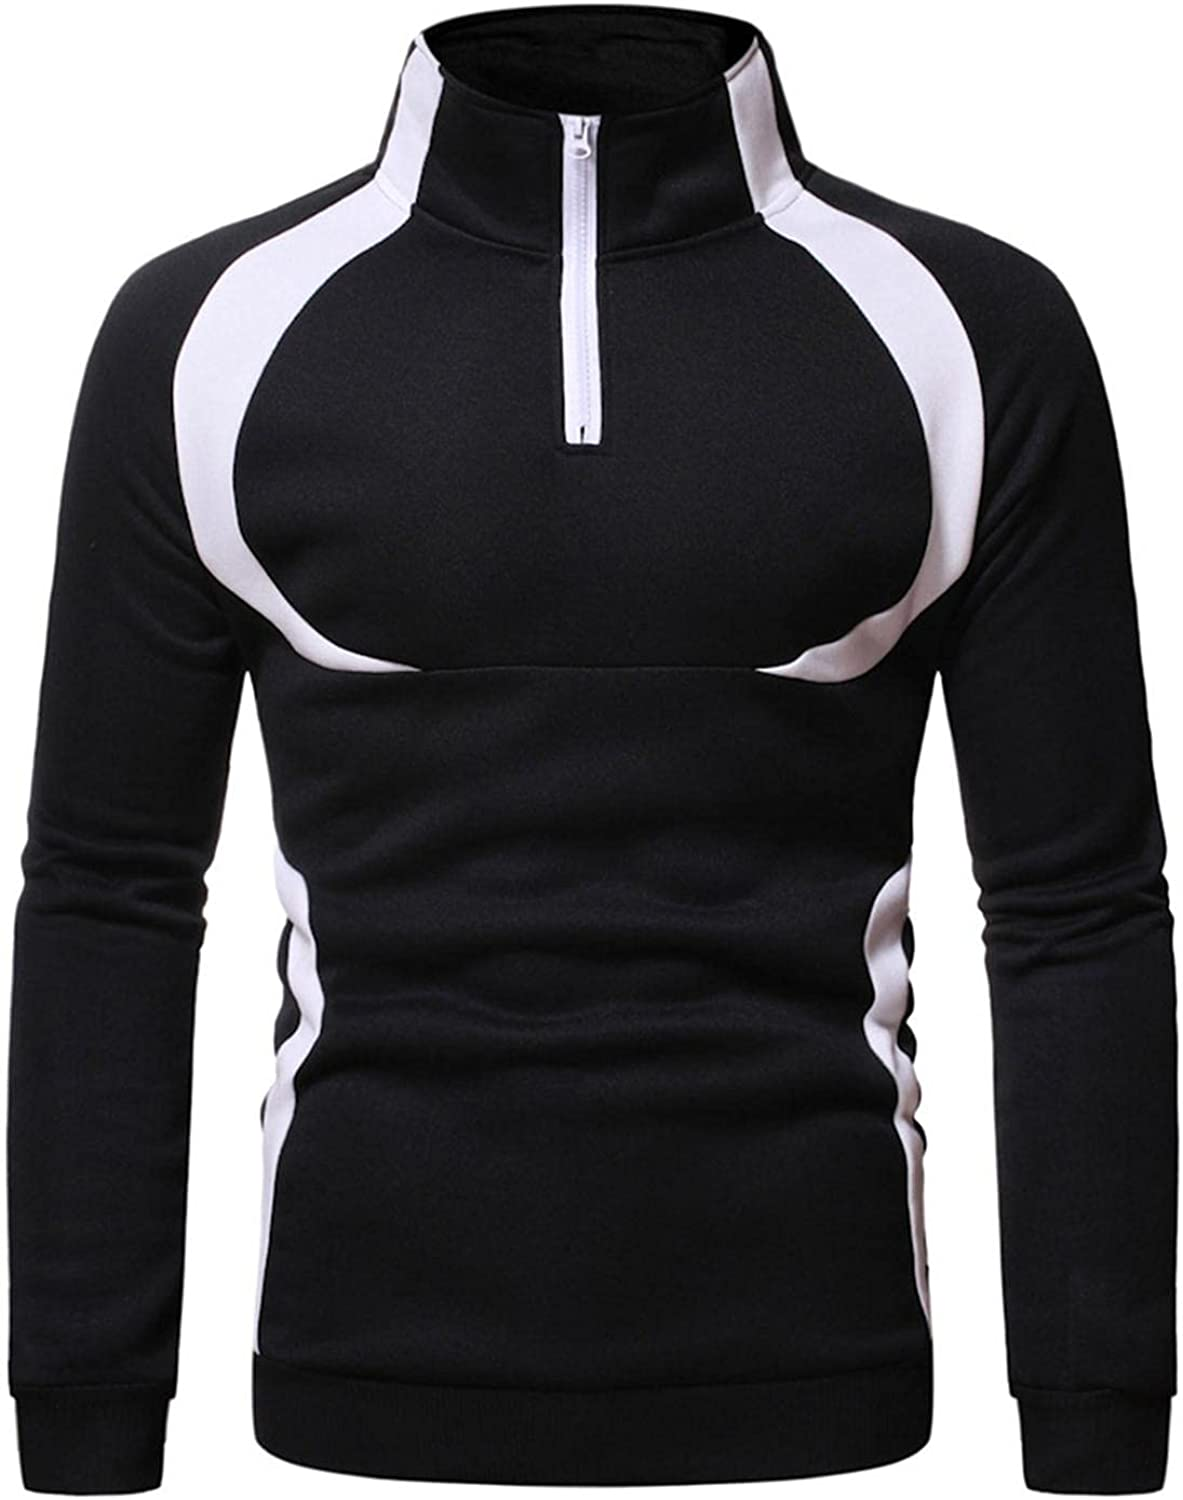 Pullover for Men Fashion Mens Athletic Hoodies High-necked Half Zipper Sweatshirt Long Sleeved Sport Gym Pullover